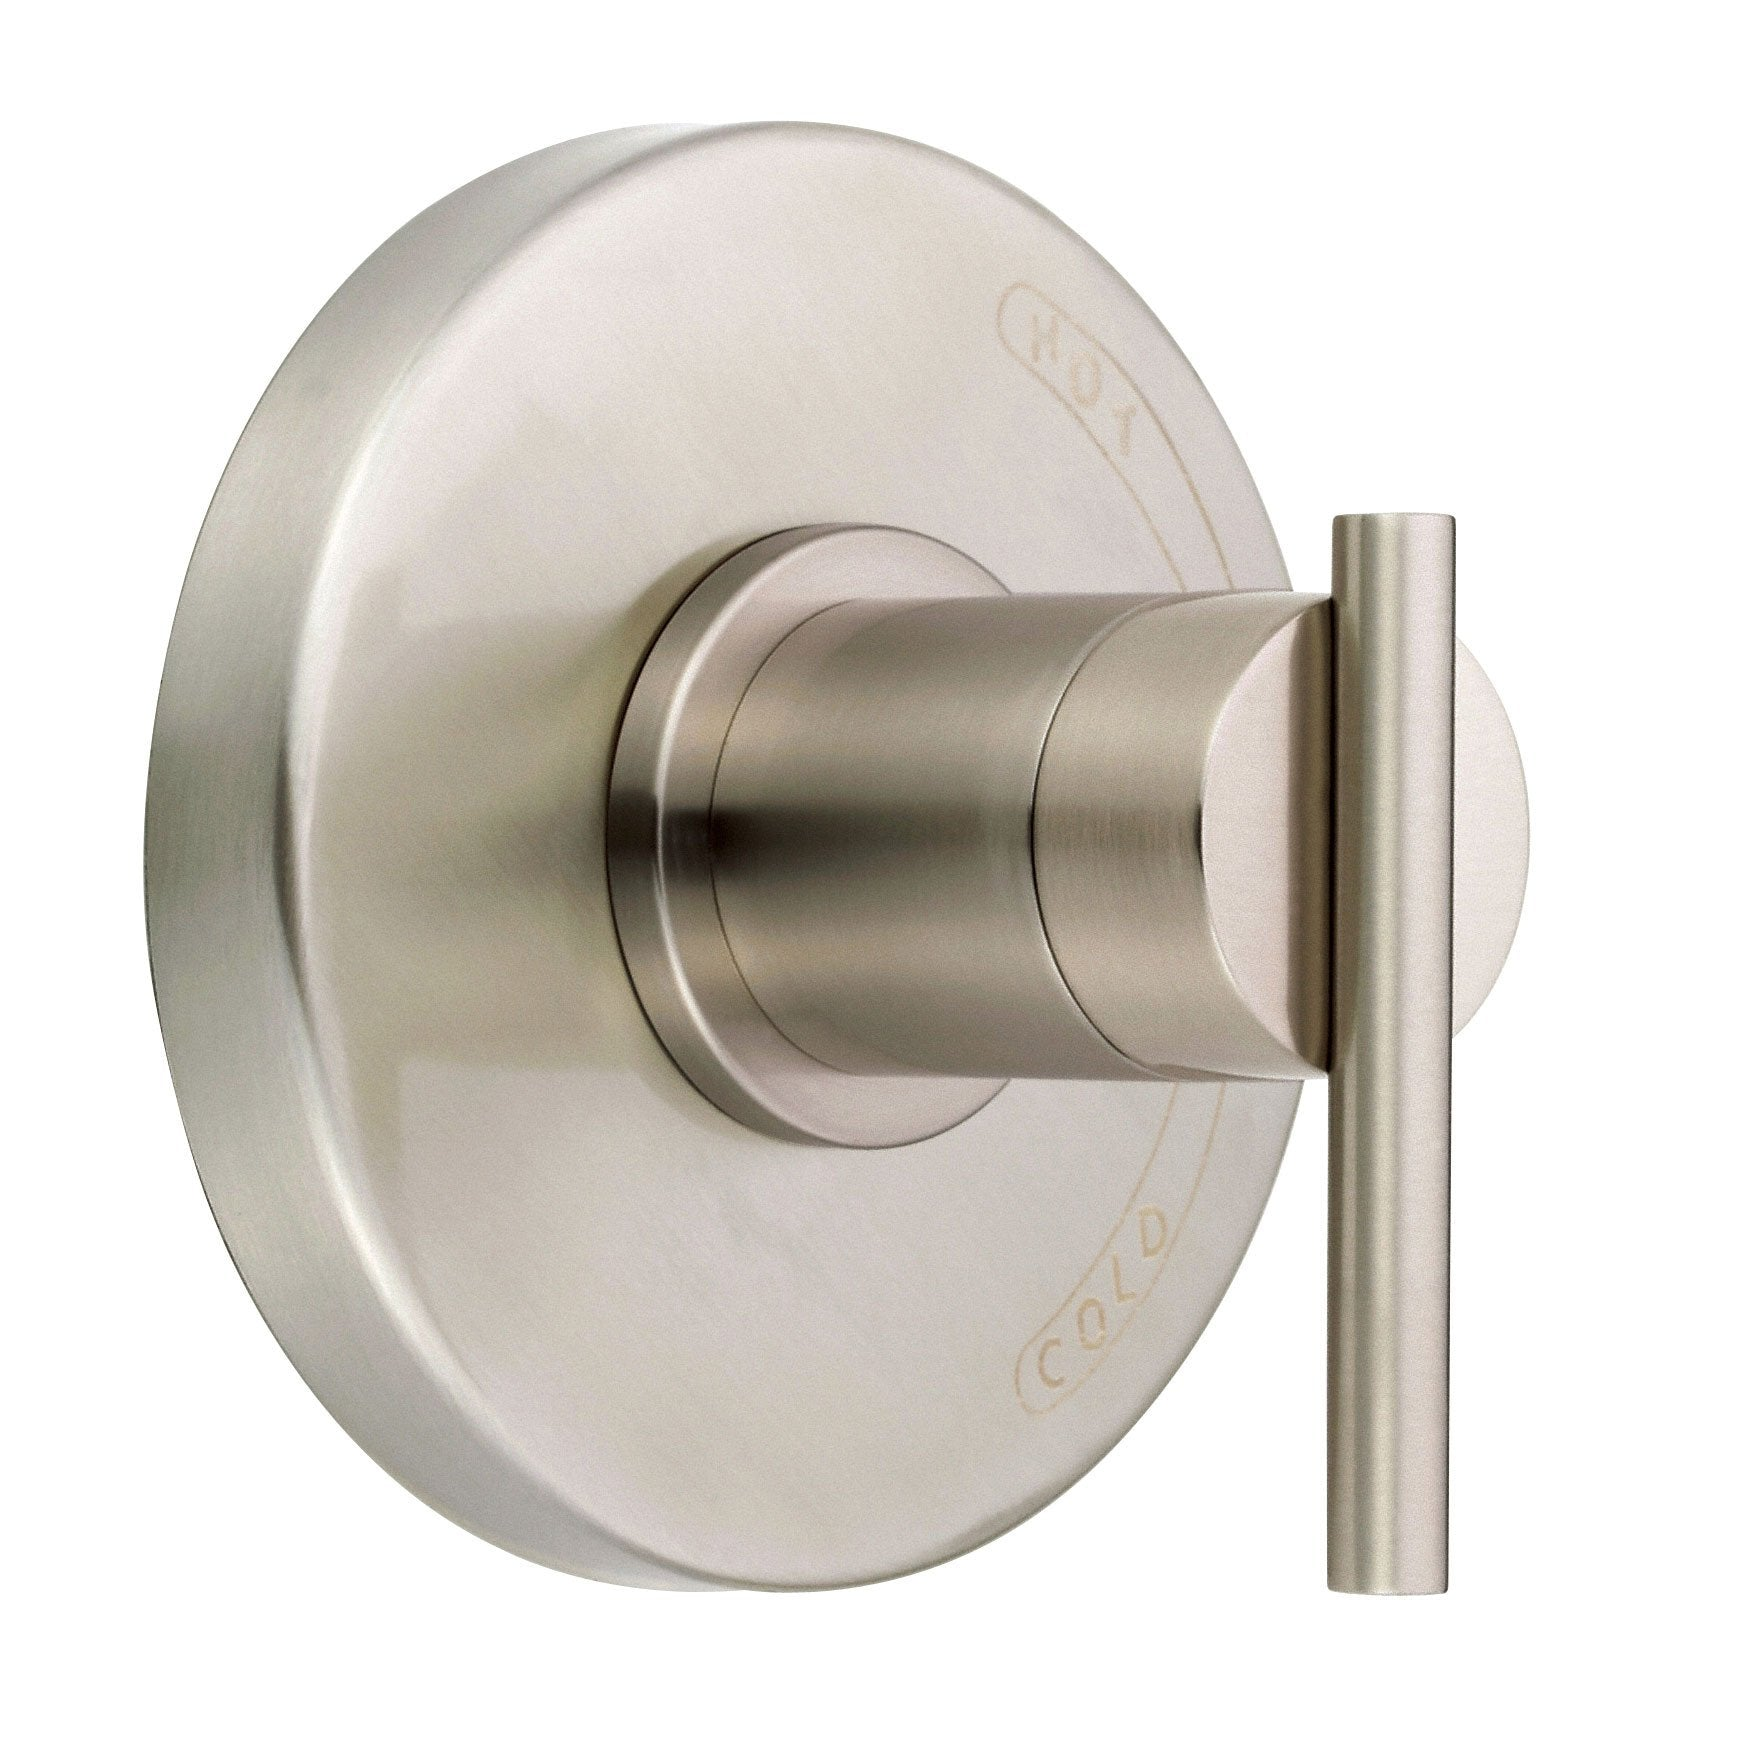 Danze Parma Brushed Nickel Modern Single Handle Shower Faucet